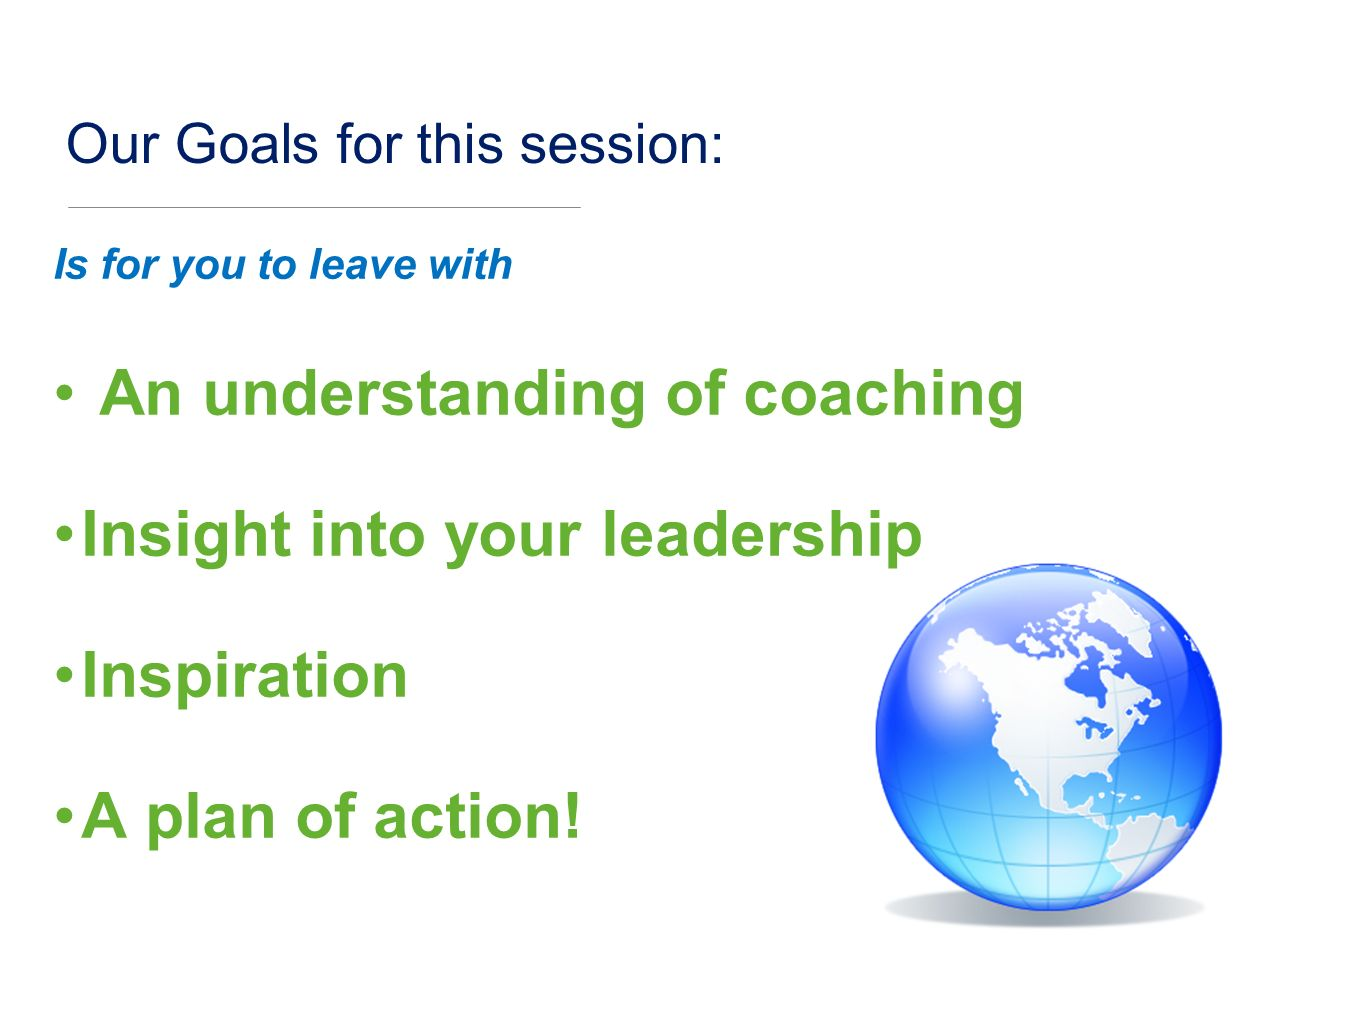 Our Goals for this session: Is for you to leave with An understanding of coaching Insight into your leadership Inspiration A plan of action!